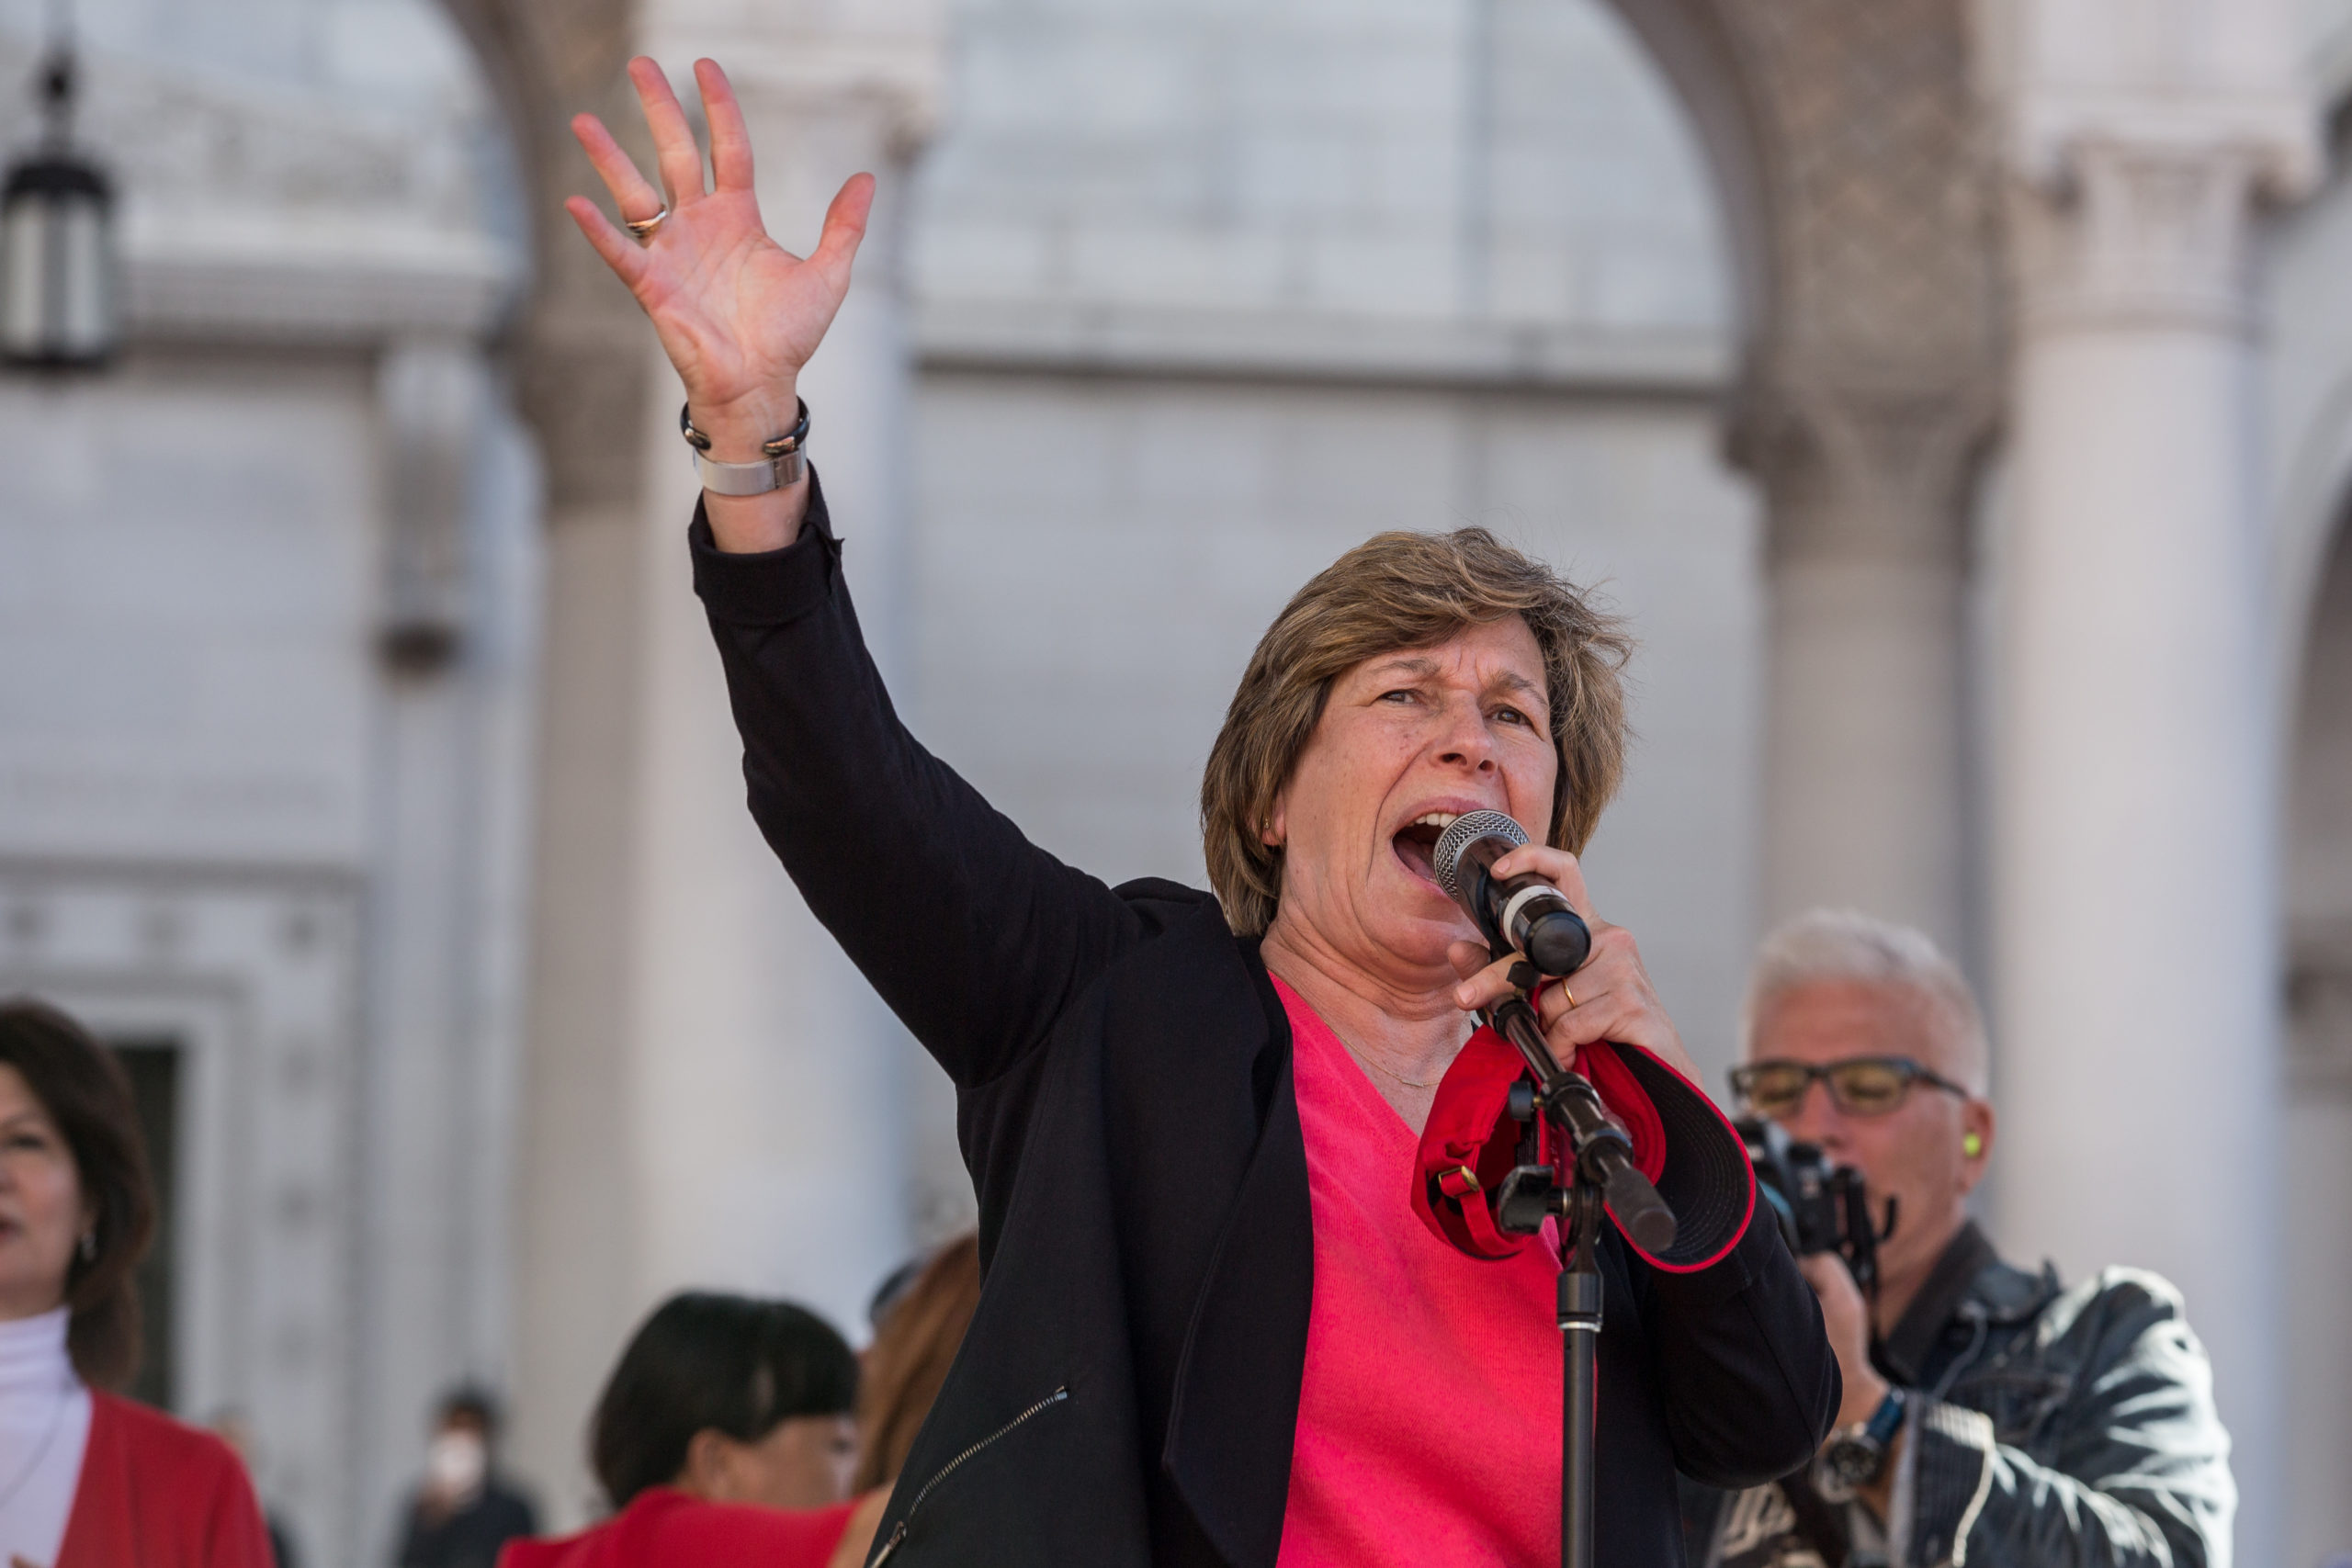 LOS ANGELES, CA - JANUARY 22: American Federation of Teachers president Randi Weingarten speaks to a crowd of striking teachers in Grand Park on January 22, 2019 in downtown Los Angeles, California. Thousands of striking teachers, educators, students, parents, and supporters cheered for victory at a massive rally after it was announced that a tentative deal between the United Teachers of Los Angeles union and the Los Angeles Unified School District heavily favored educators' demands including a cap on rising class sizes, funding for school nurses, and a significant pay increase. (Photo by Scott Heins/Getty Images)